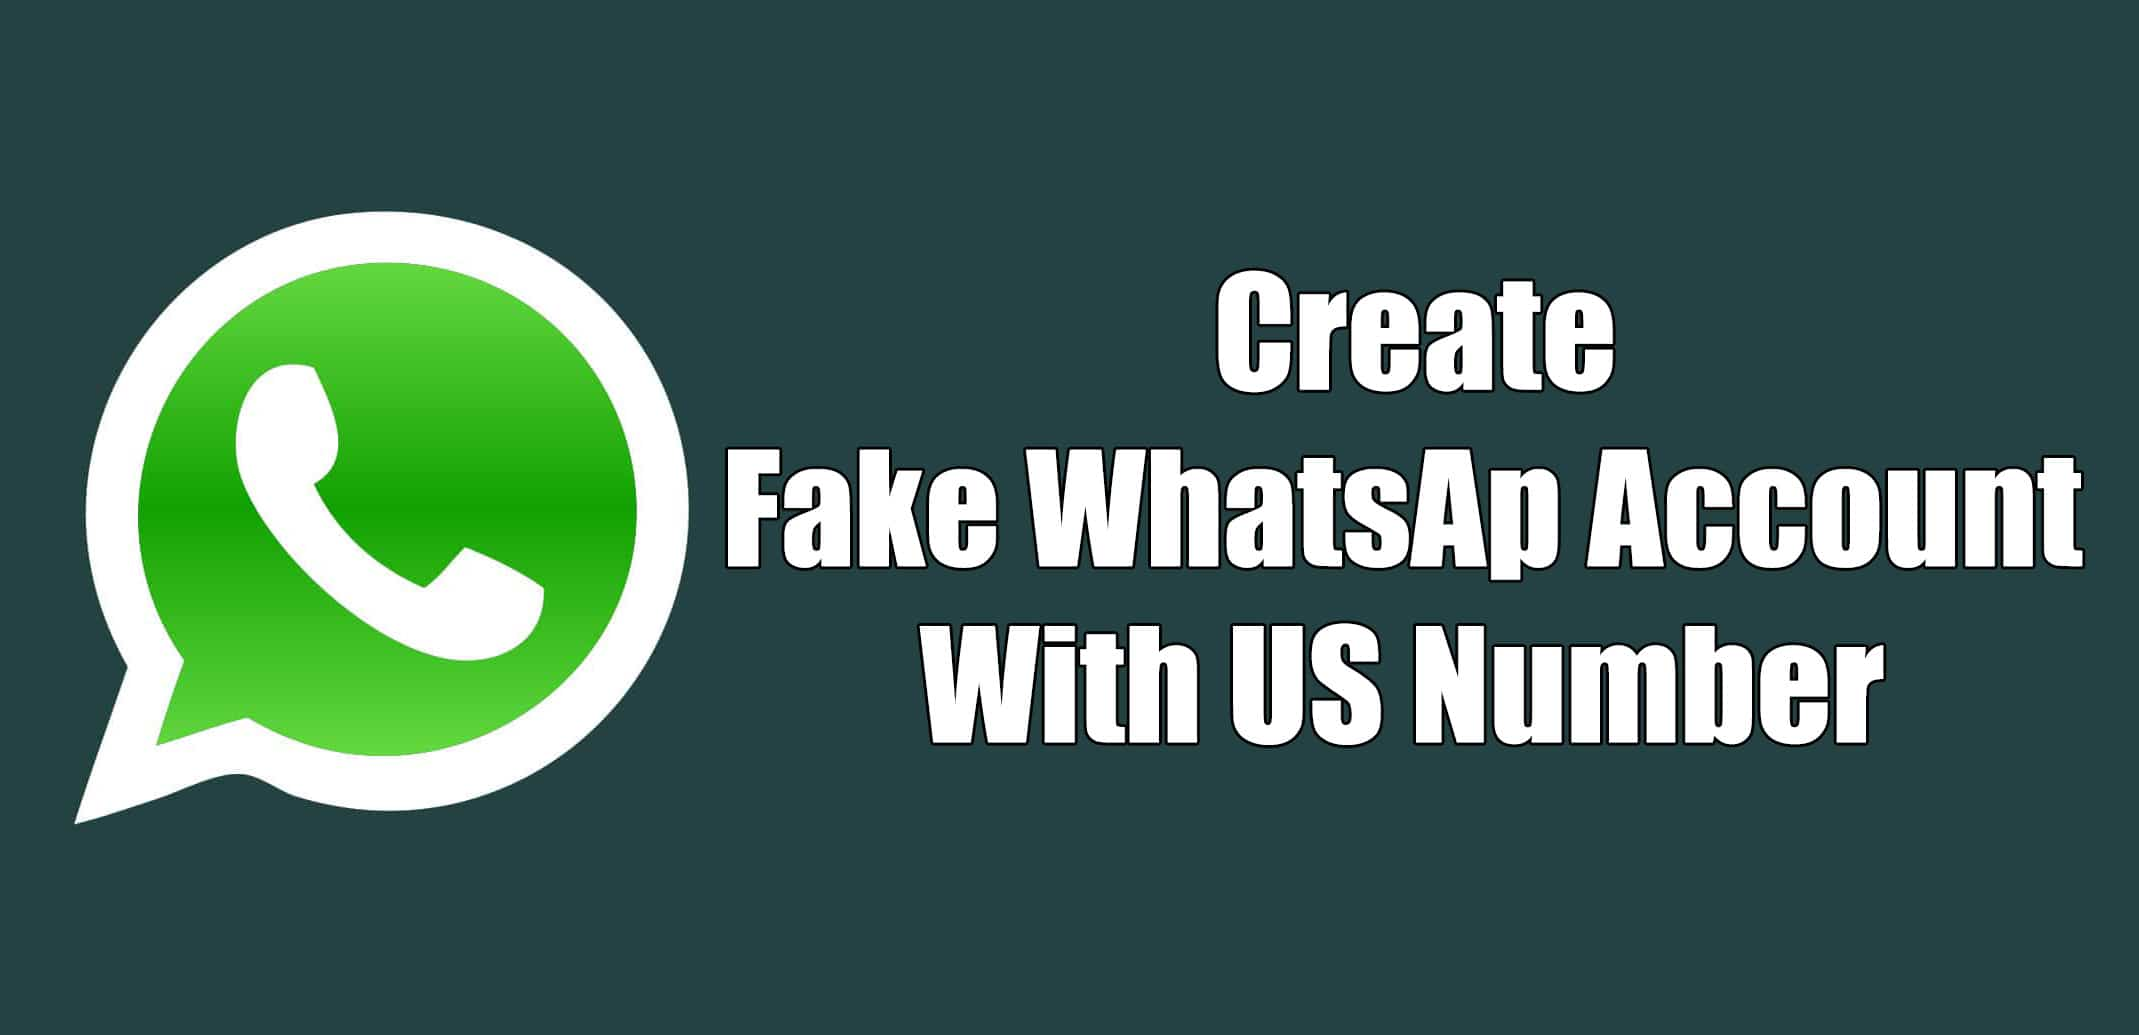 how to use whatsapp with fake number